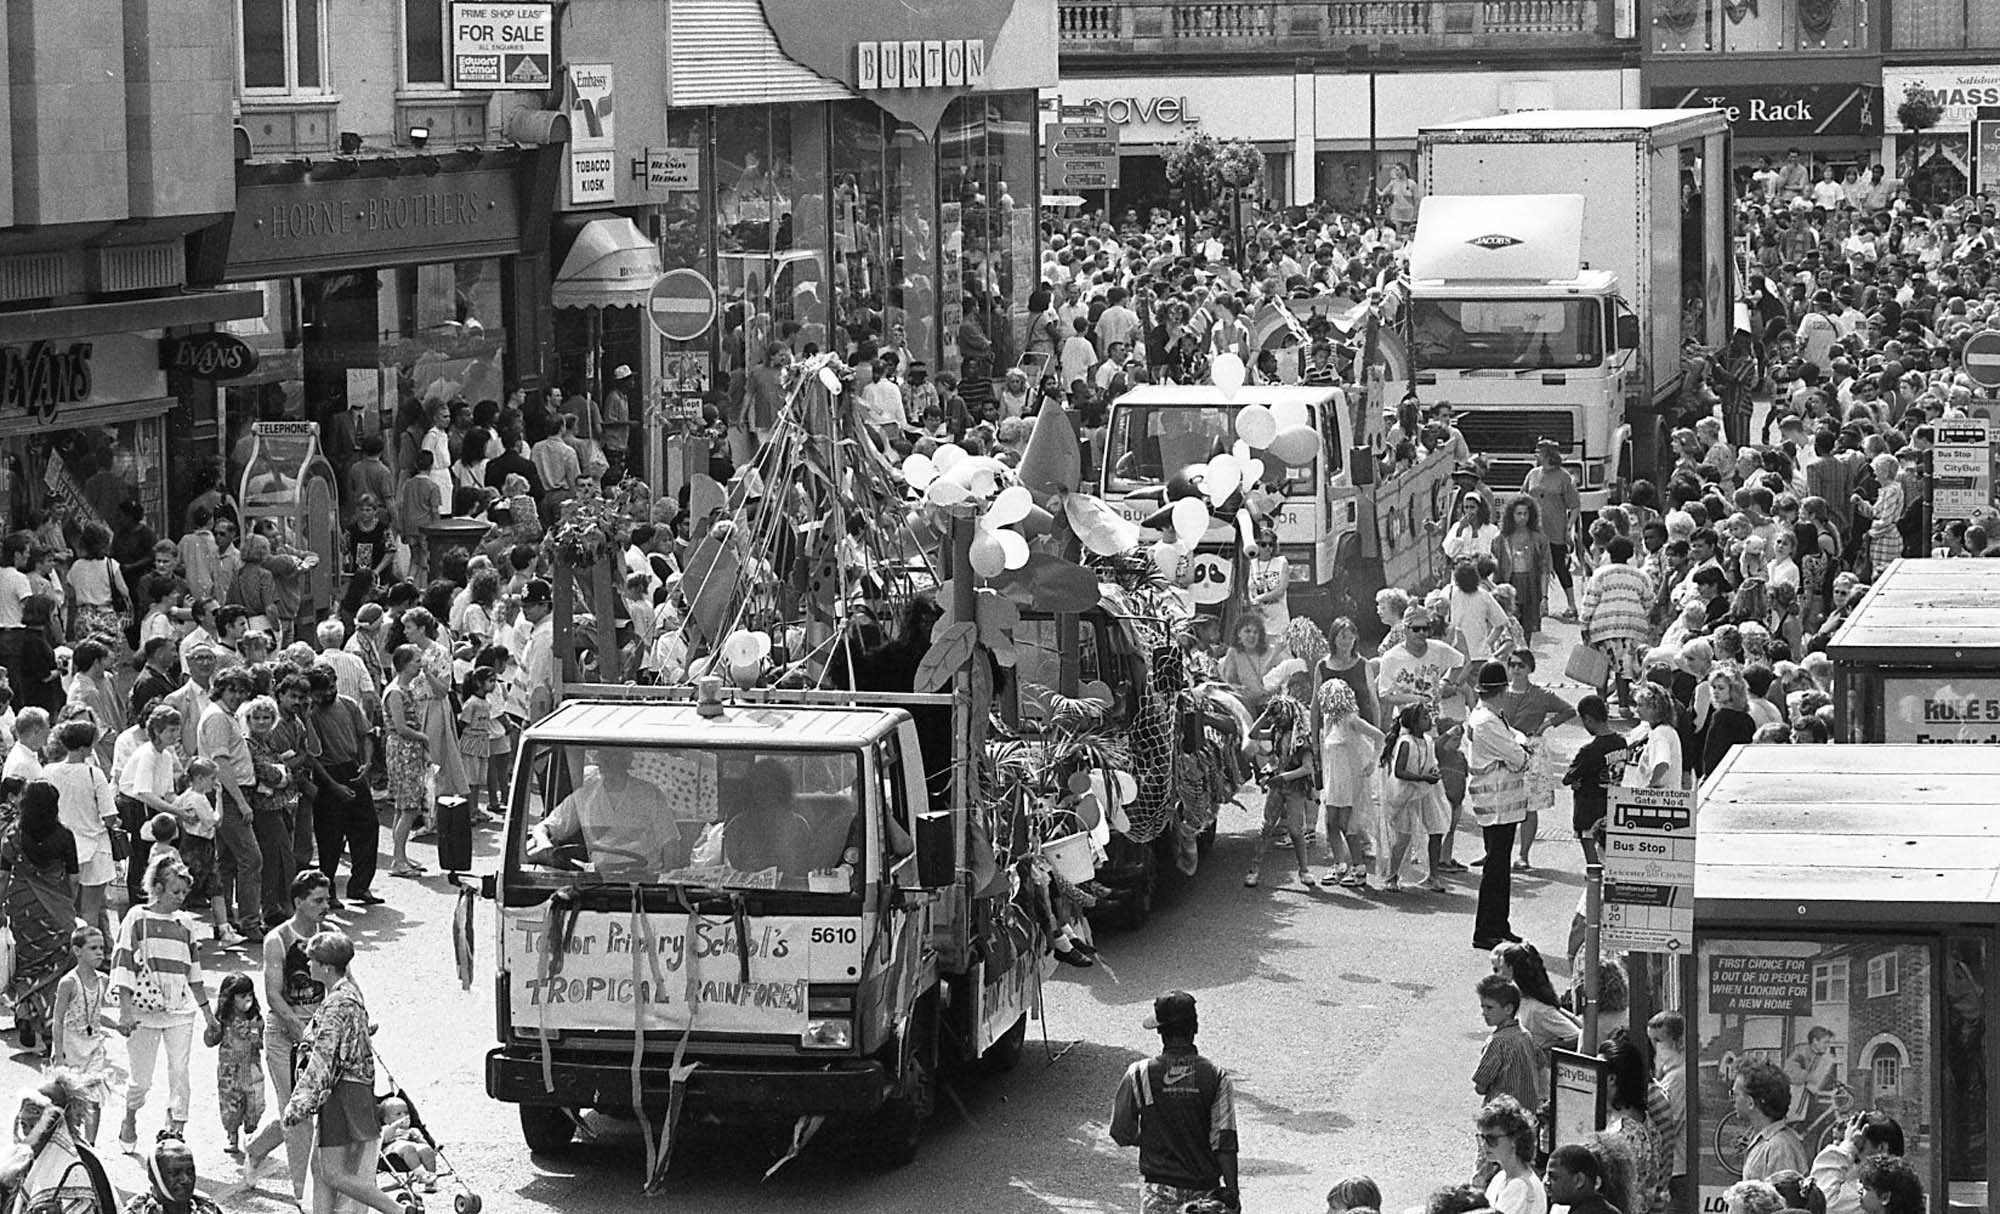 The Carnival parade reaches Humberstone Gate where most of the crowds are gathered, 1991 -